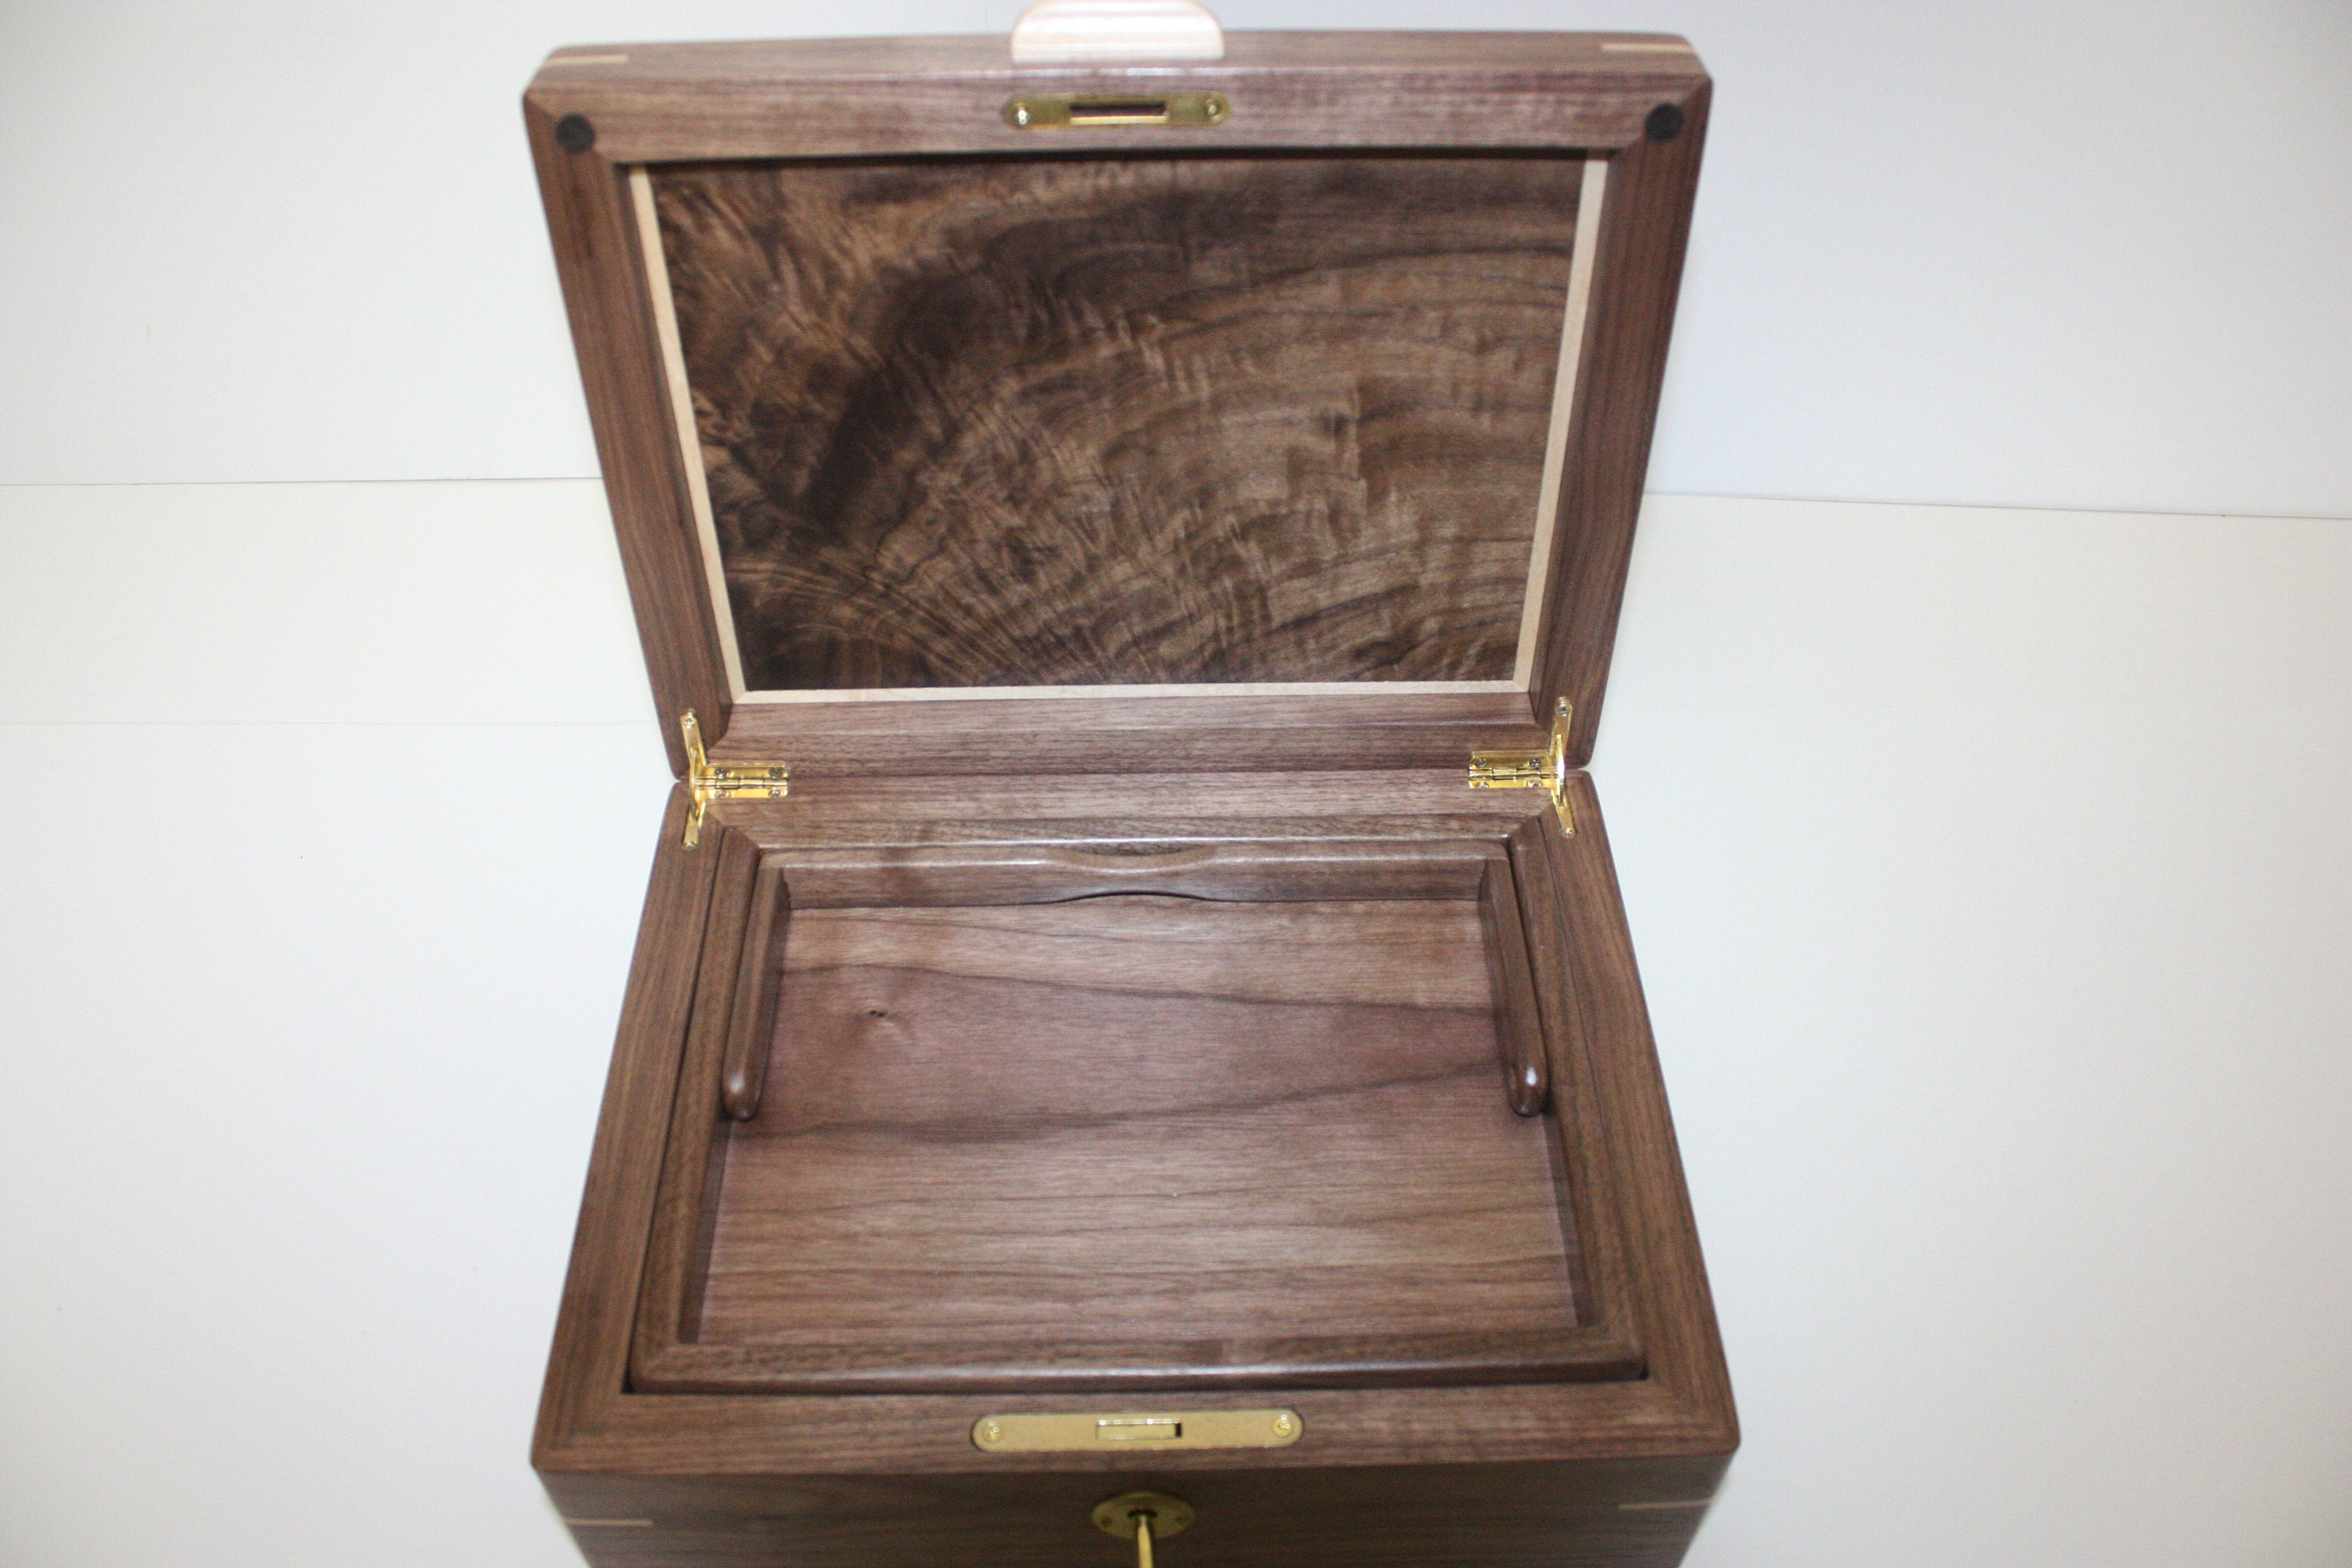 Handcrafted box with lift out tray